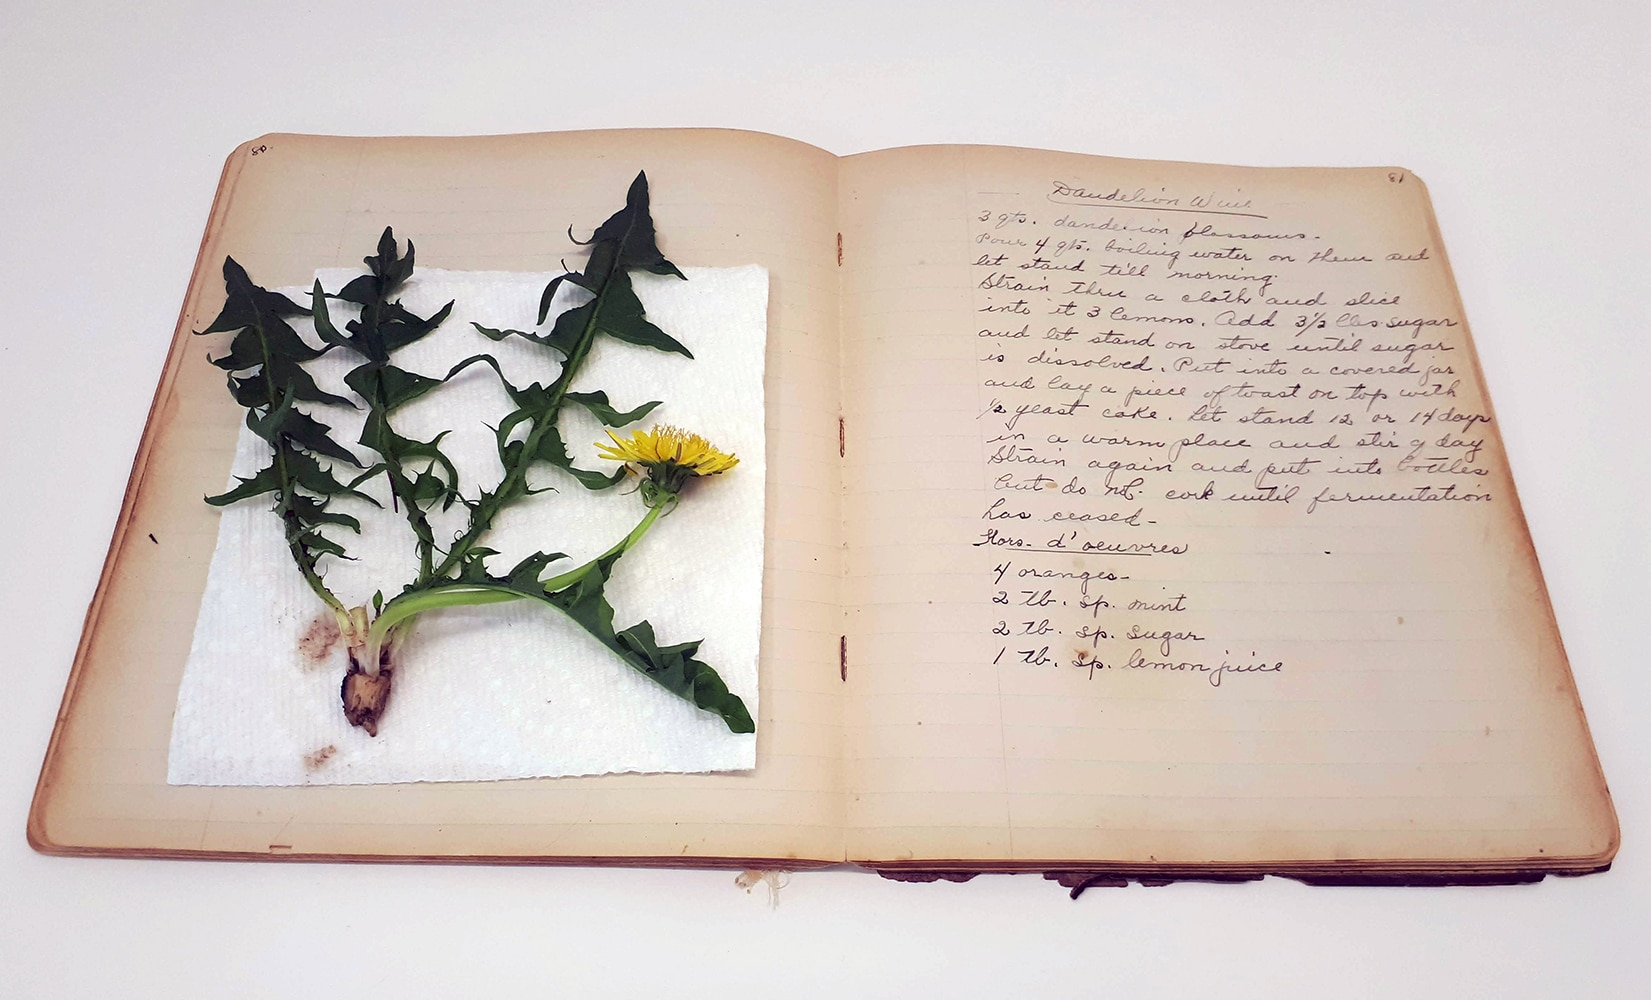 Great Grandmother's dandelion wine recipe, with plant,  Spring 2019